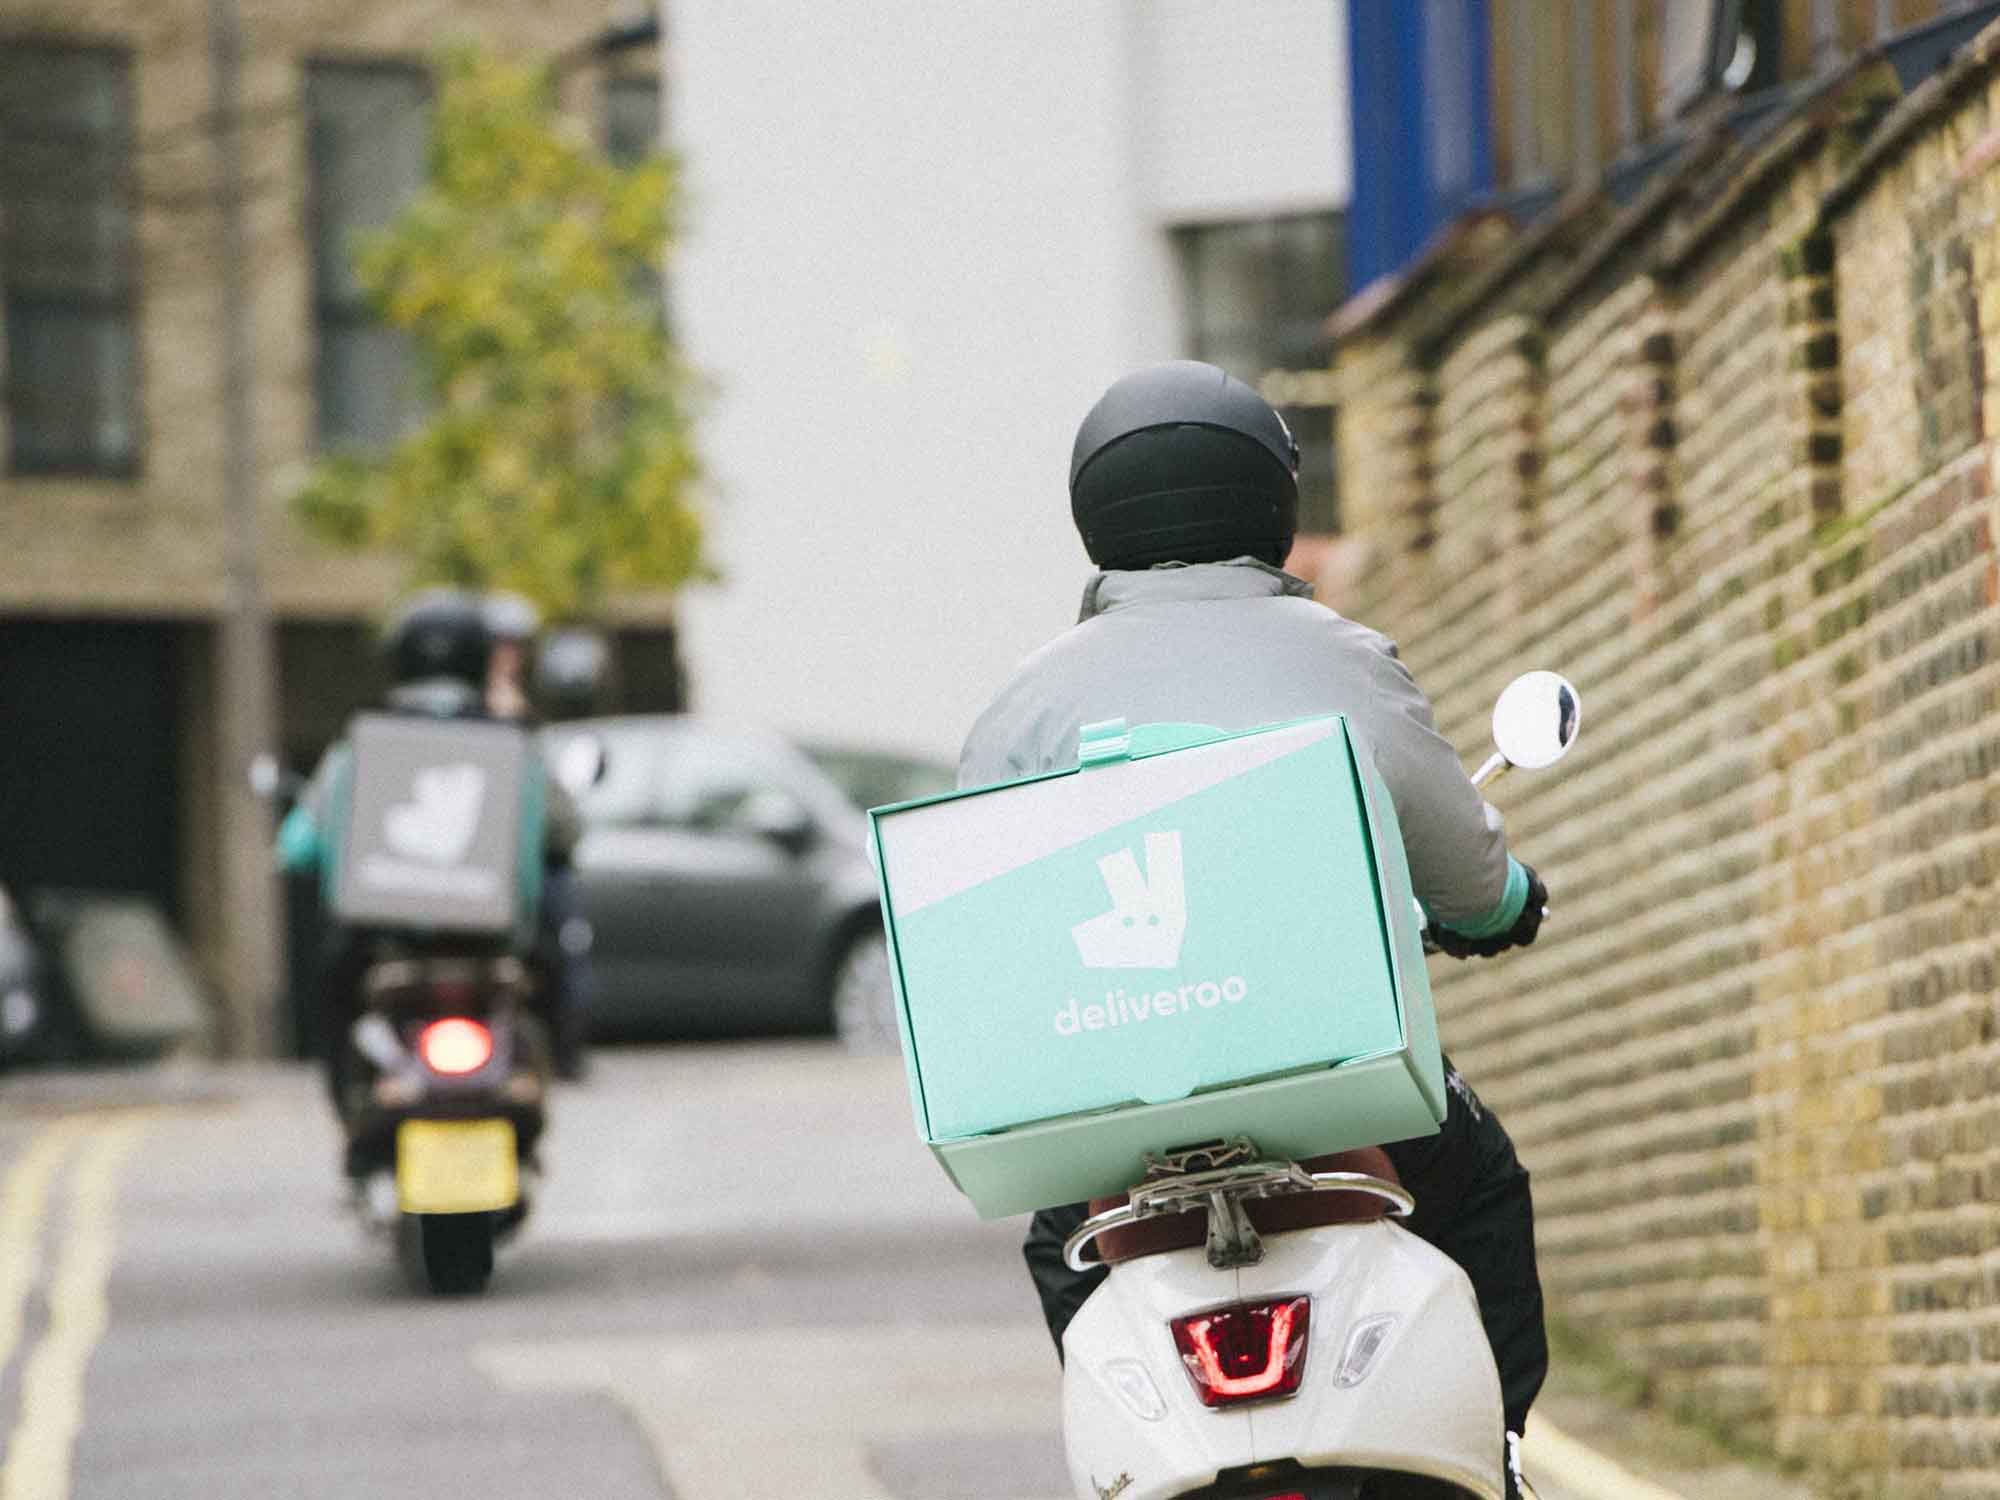 A Deliveroo rider in a Deliveroo jacket rides a motorbike in London